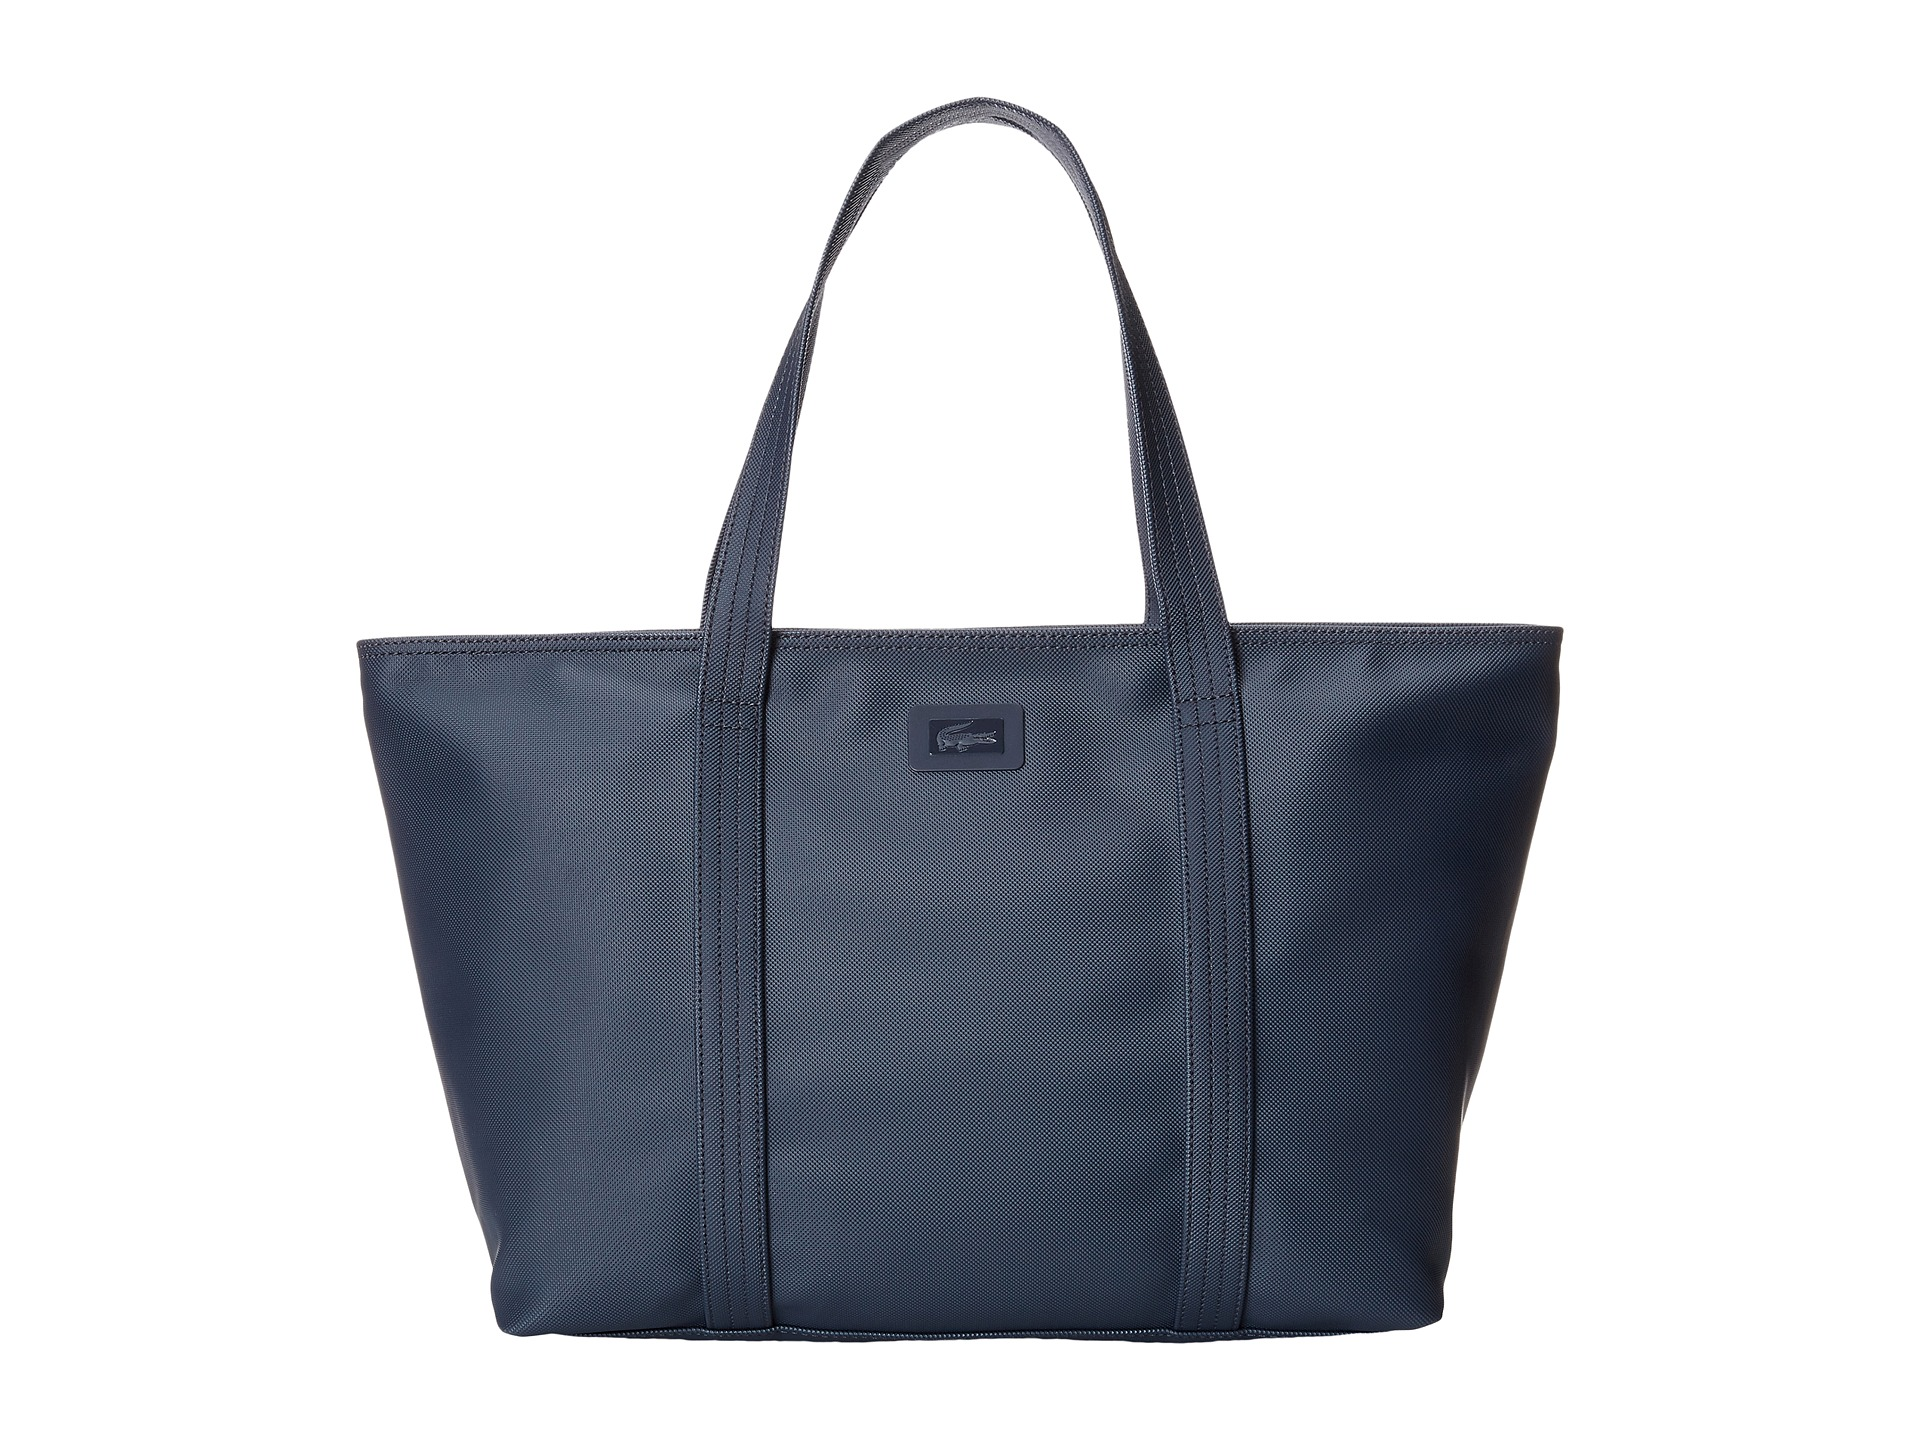 lacoste bags - photo #15